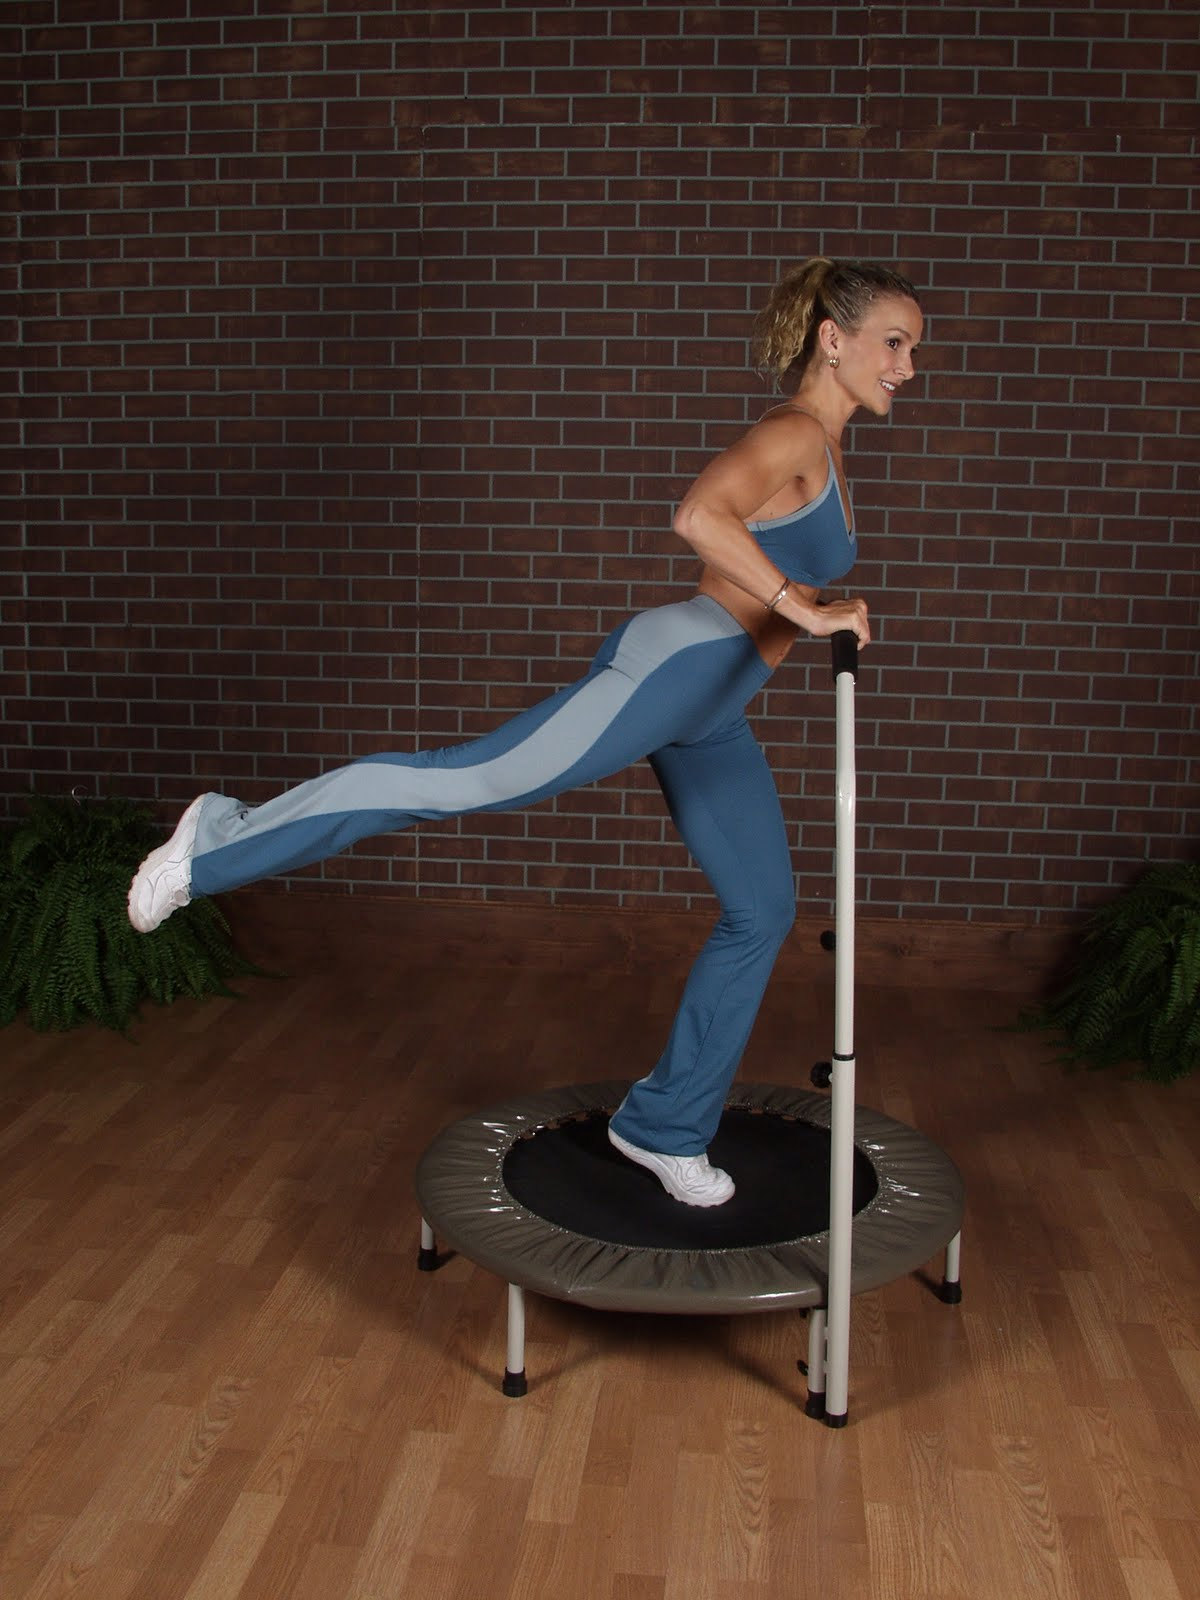 Commit to be Fit: Trampoline as a fitness tool? You better believe it